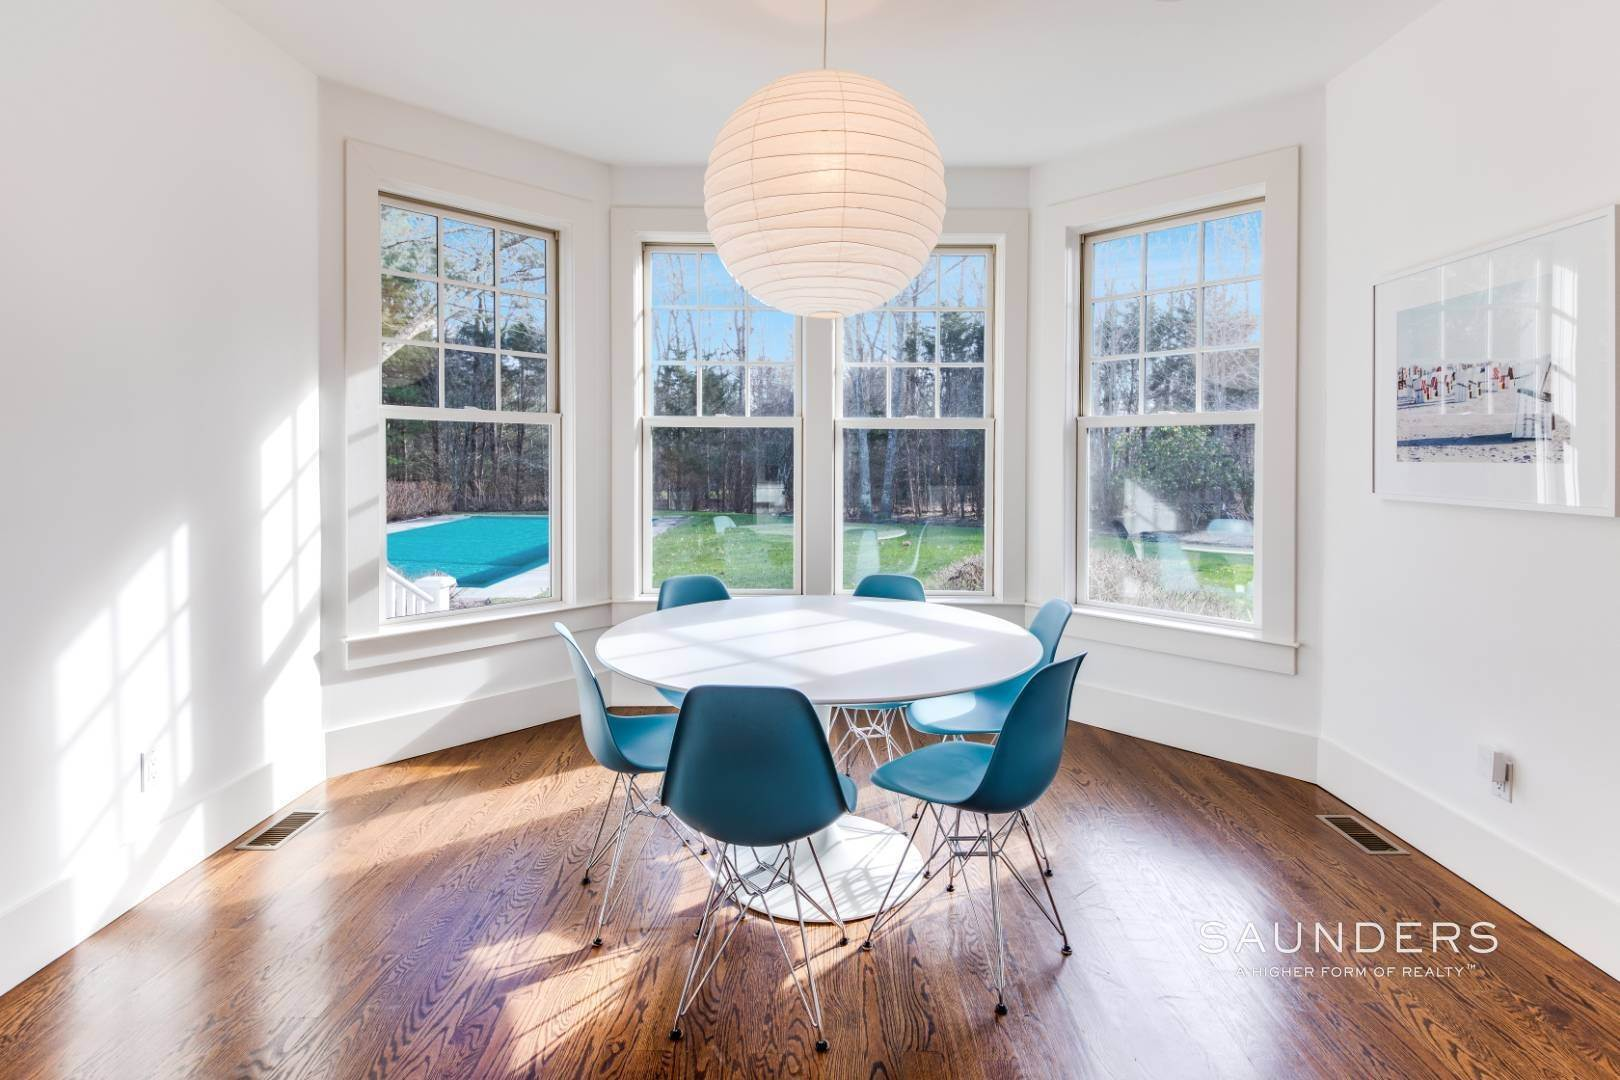 8. Single Family Homes for Sale at Wainscott South Traditional Near Beach Lane 10 Merriwood Drive, Wainscott, East Hampton Town, NY 11975